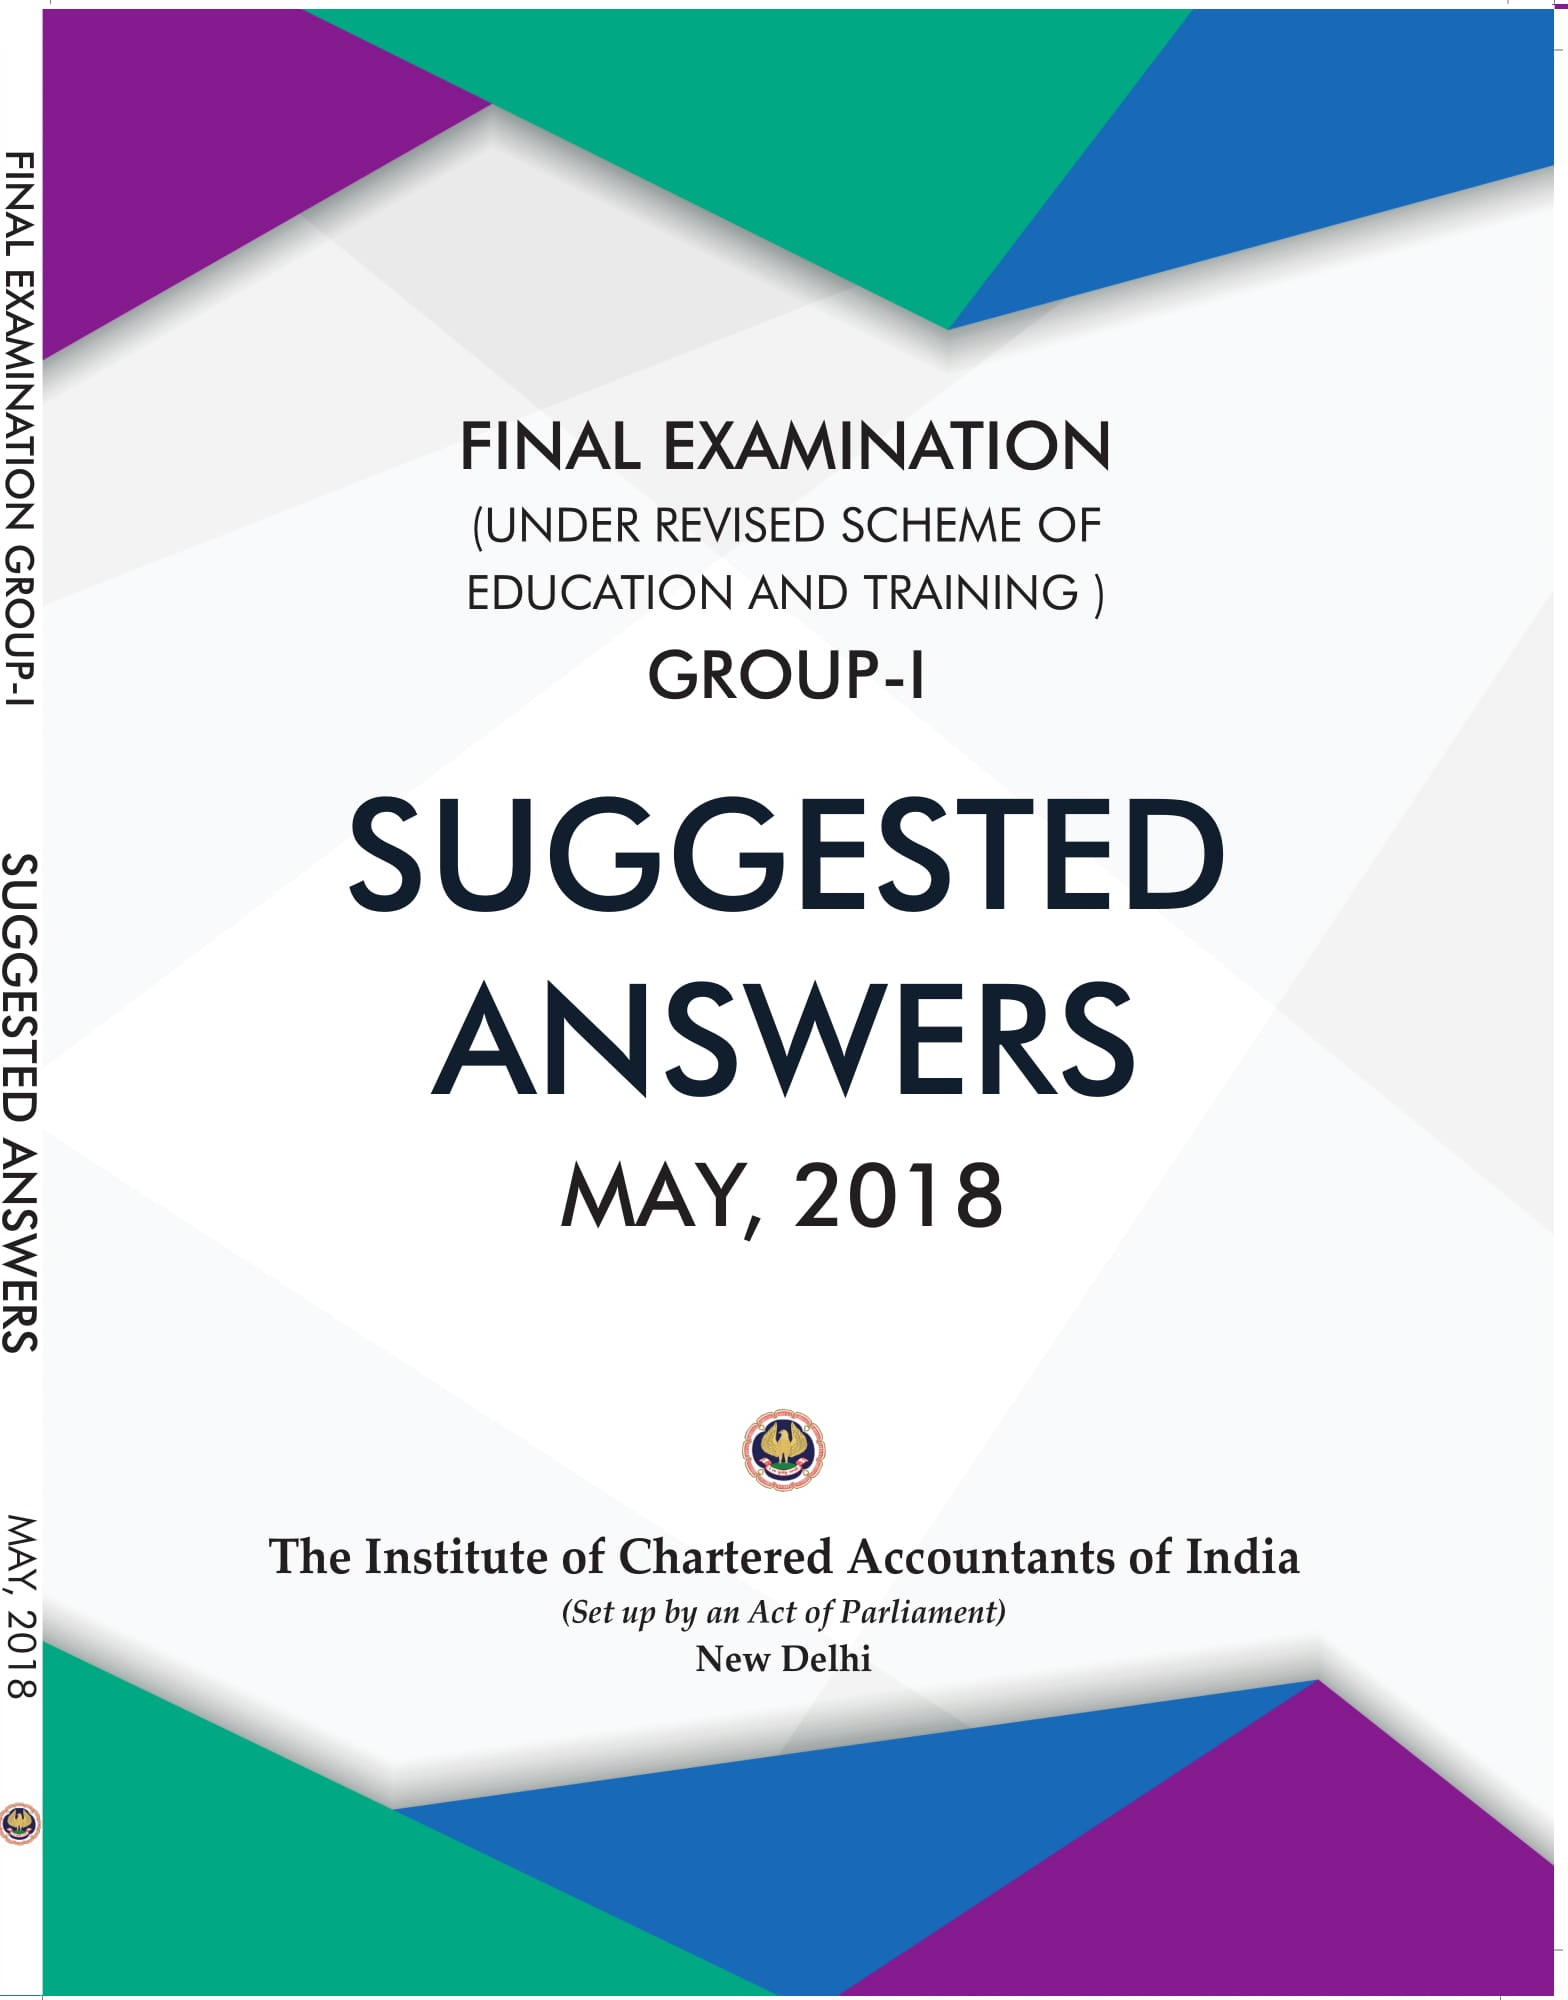 Final Examination (Under Revised Scheme of Education and Training) Group-1 Suggested Answers May, 2018